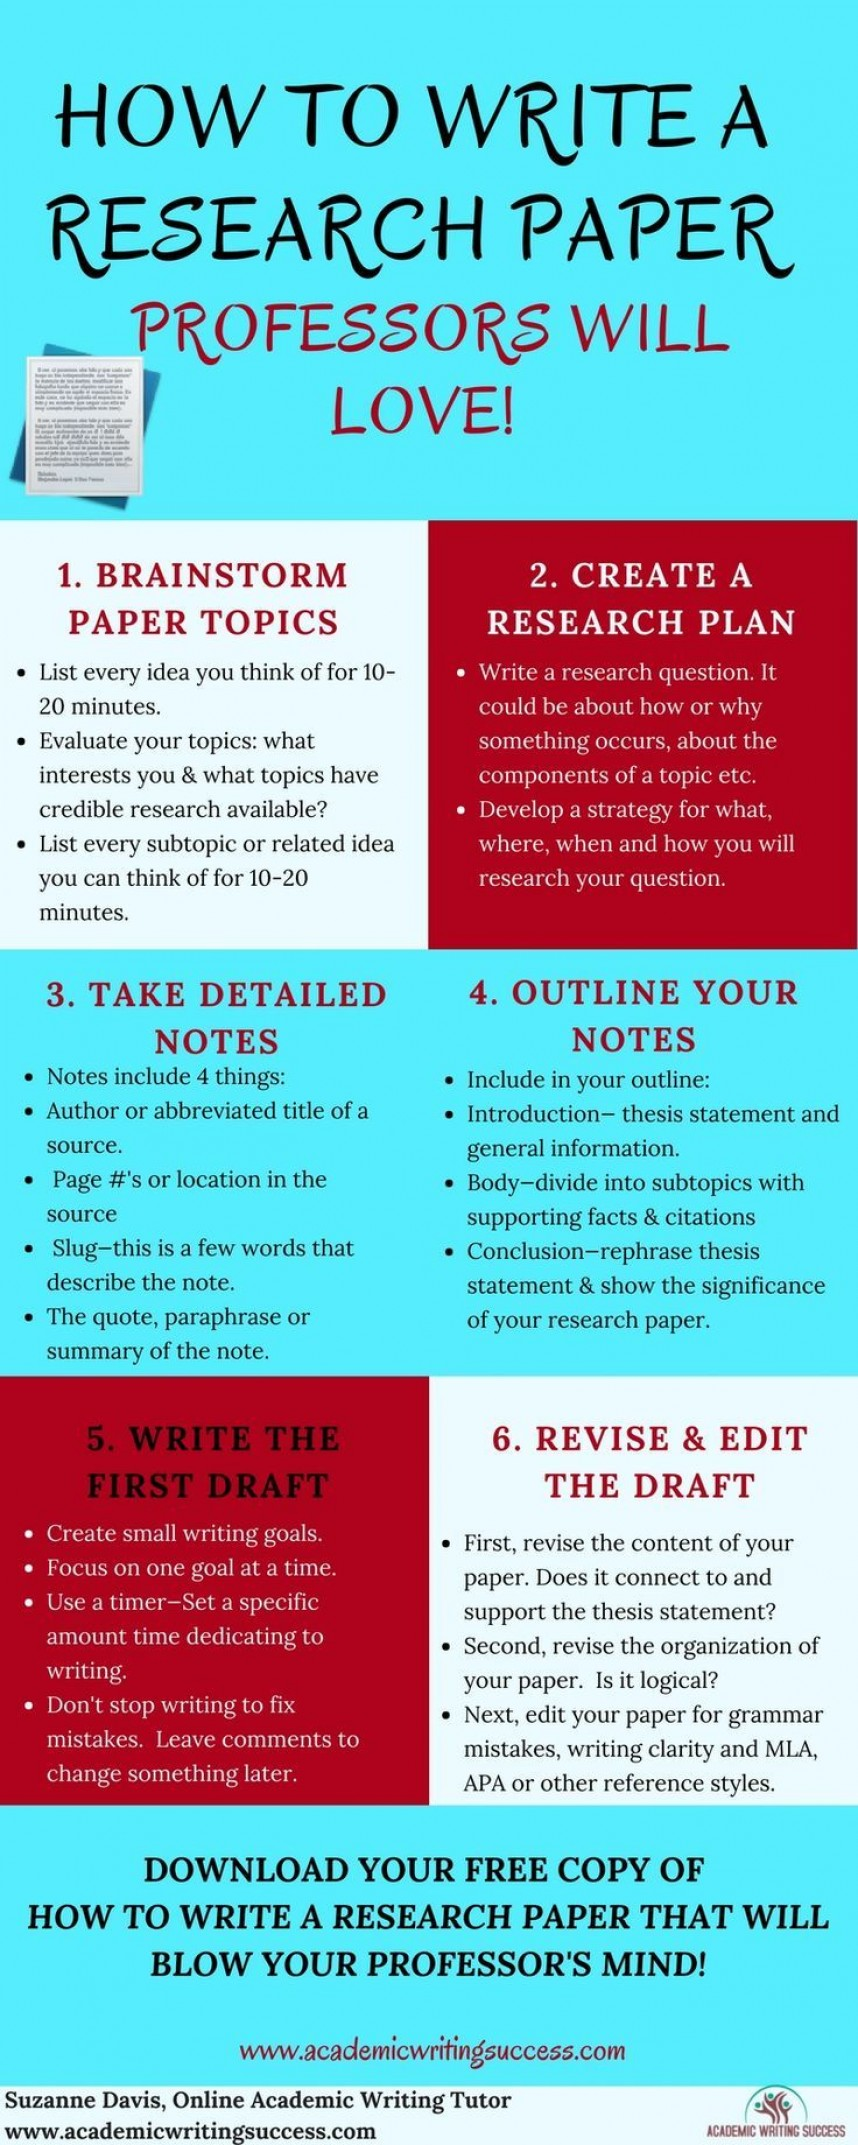 007 Research Paper Steps To Writing Fearsome A For Elementary Students Powerpoint Mla Style